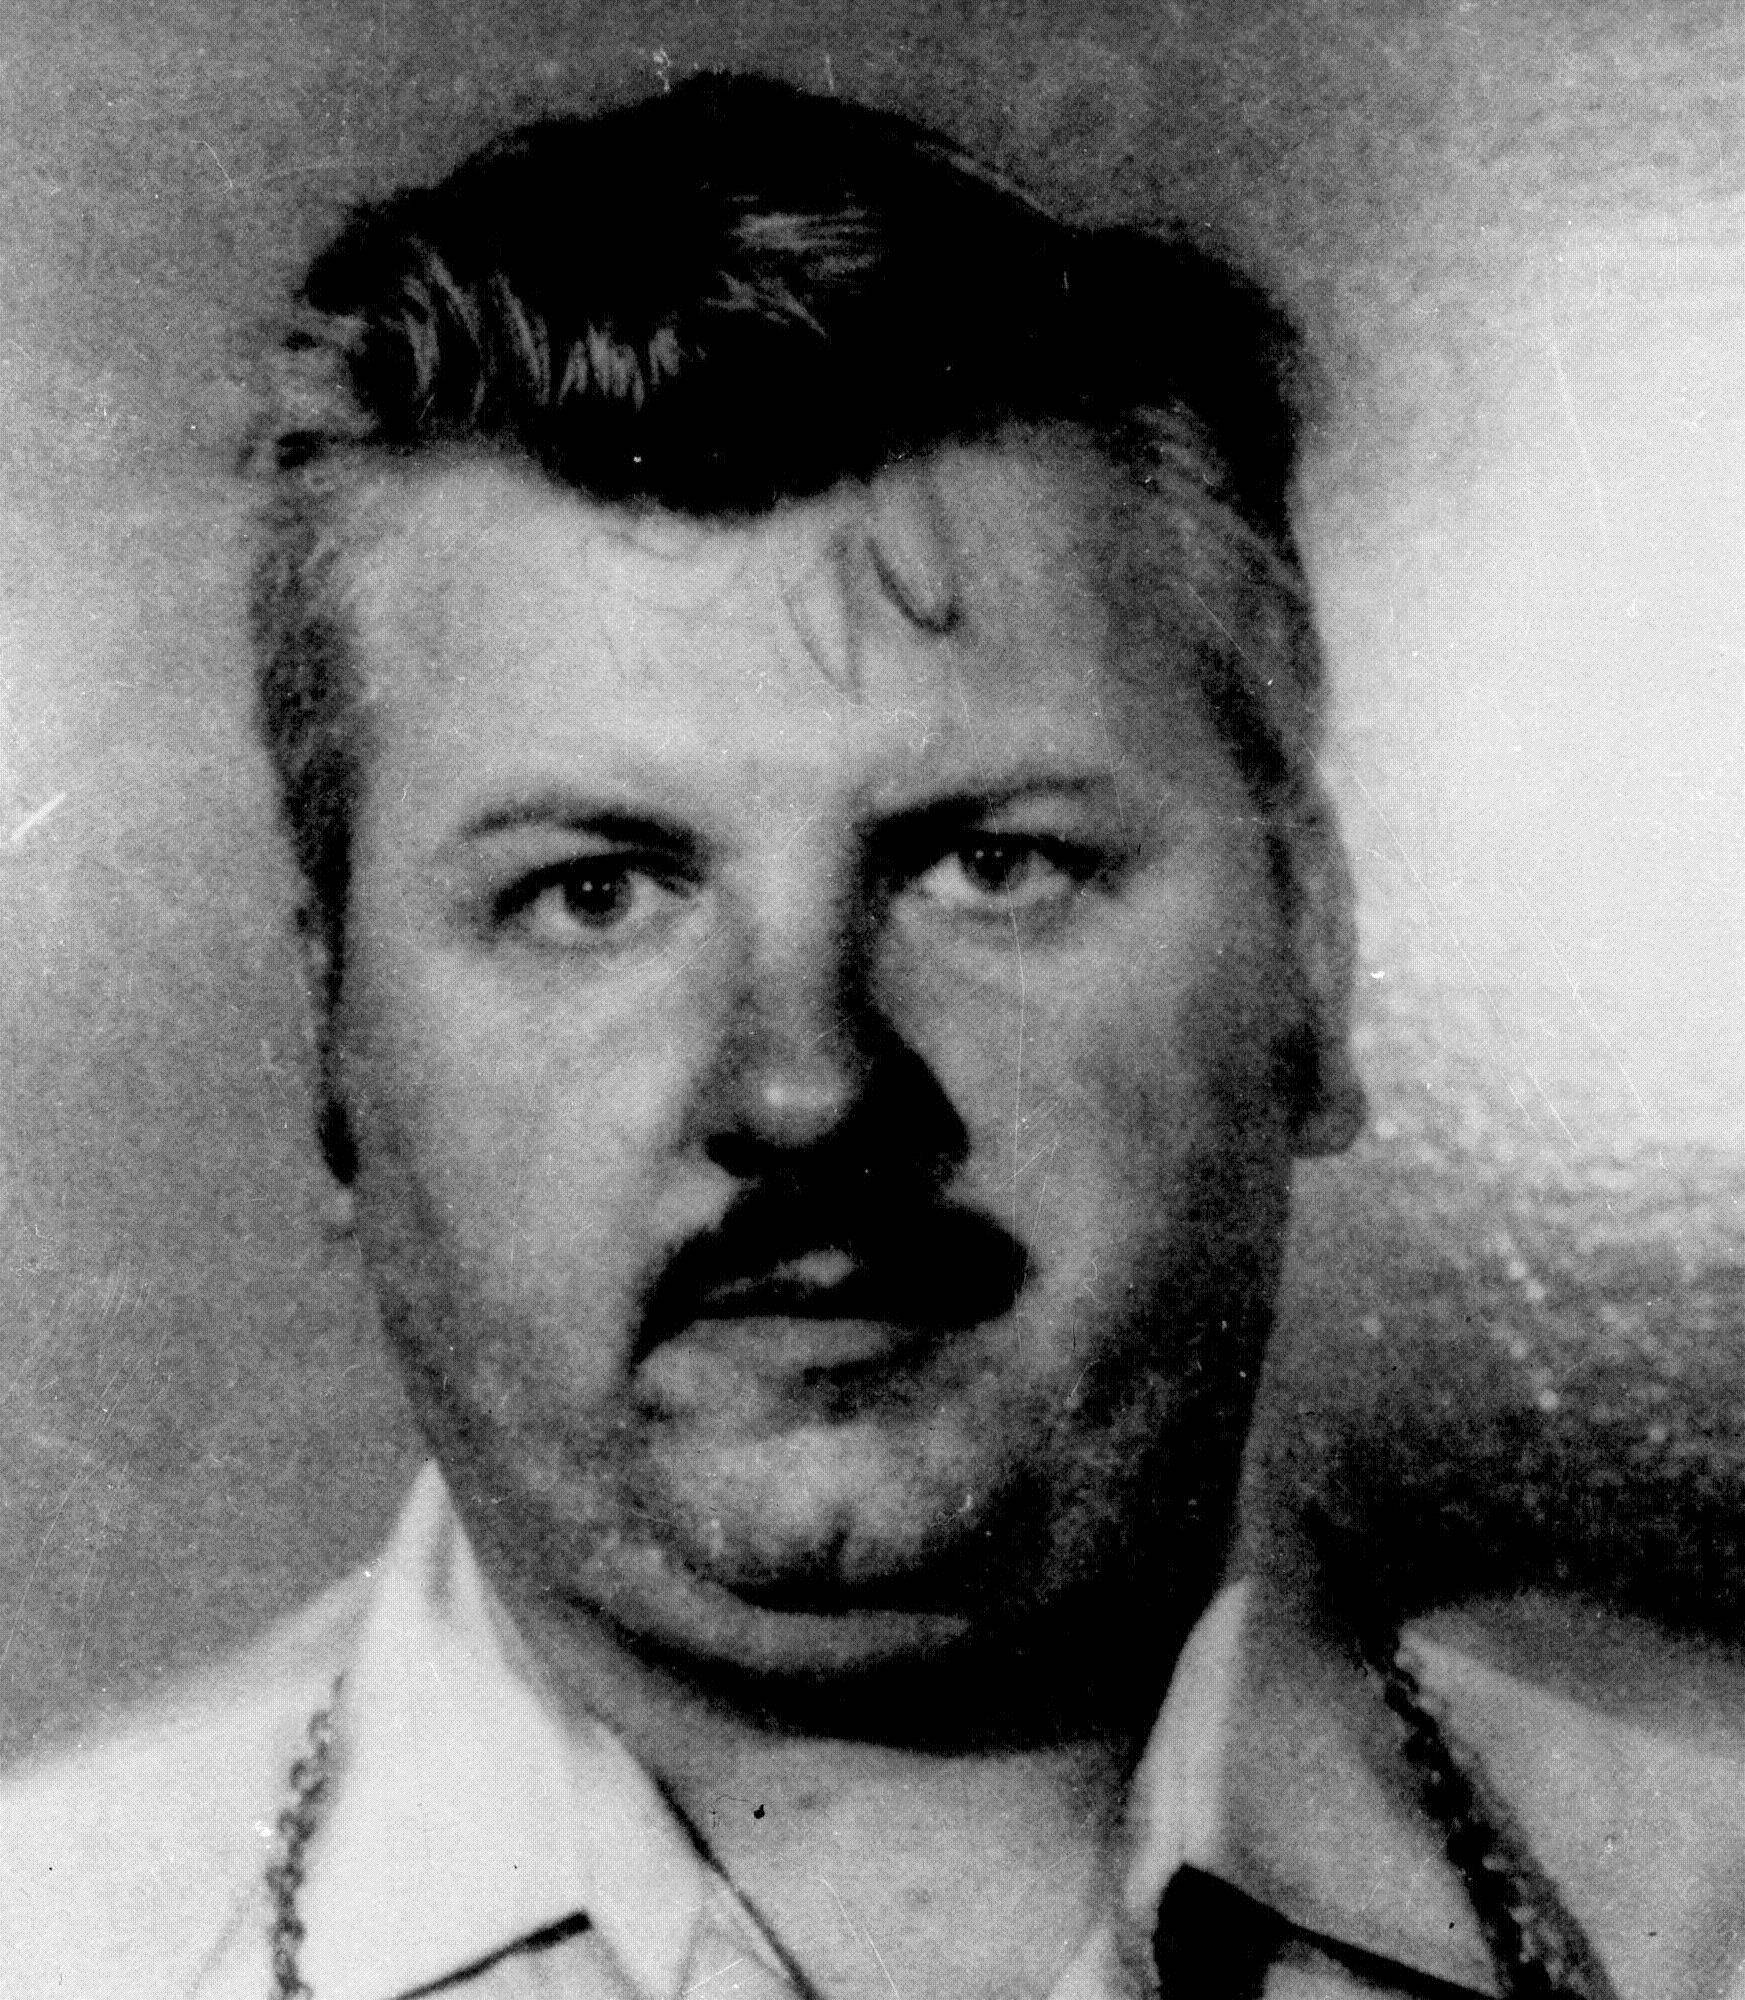 This 1978 file photo shows serial killer John Wayne Gacy, who was put to death after being convicted of killing 33 young men and burying many of them in his home in unincorporated Norwood Park Township.